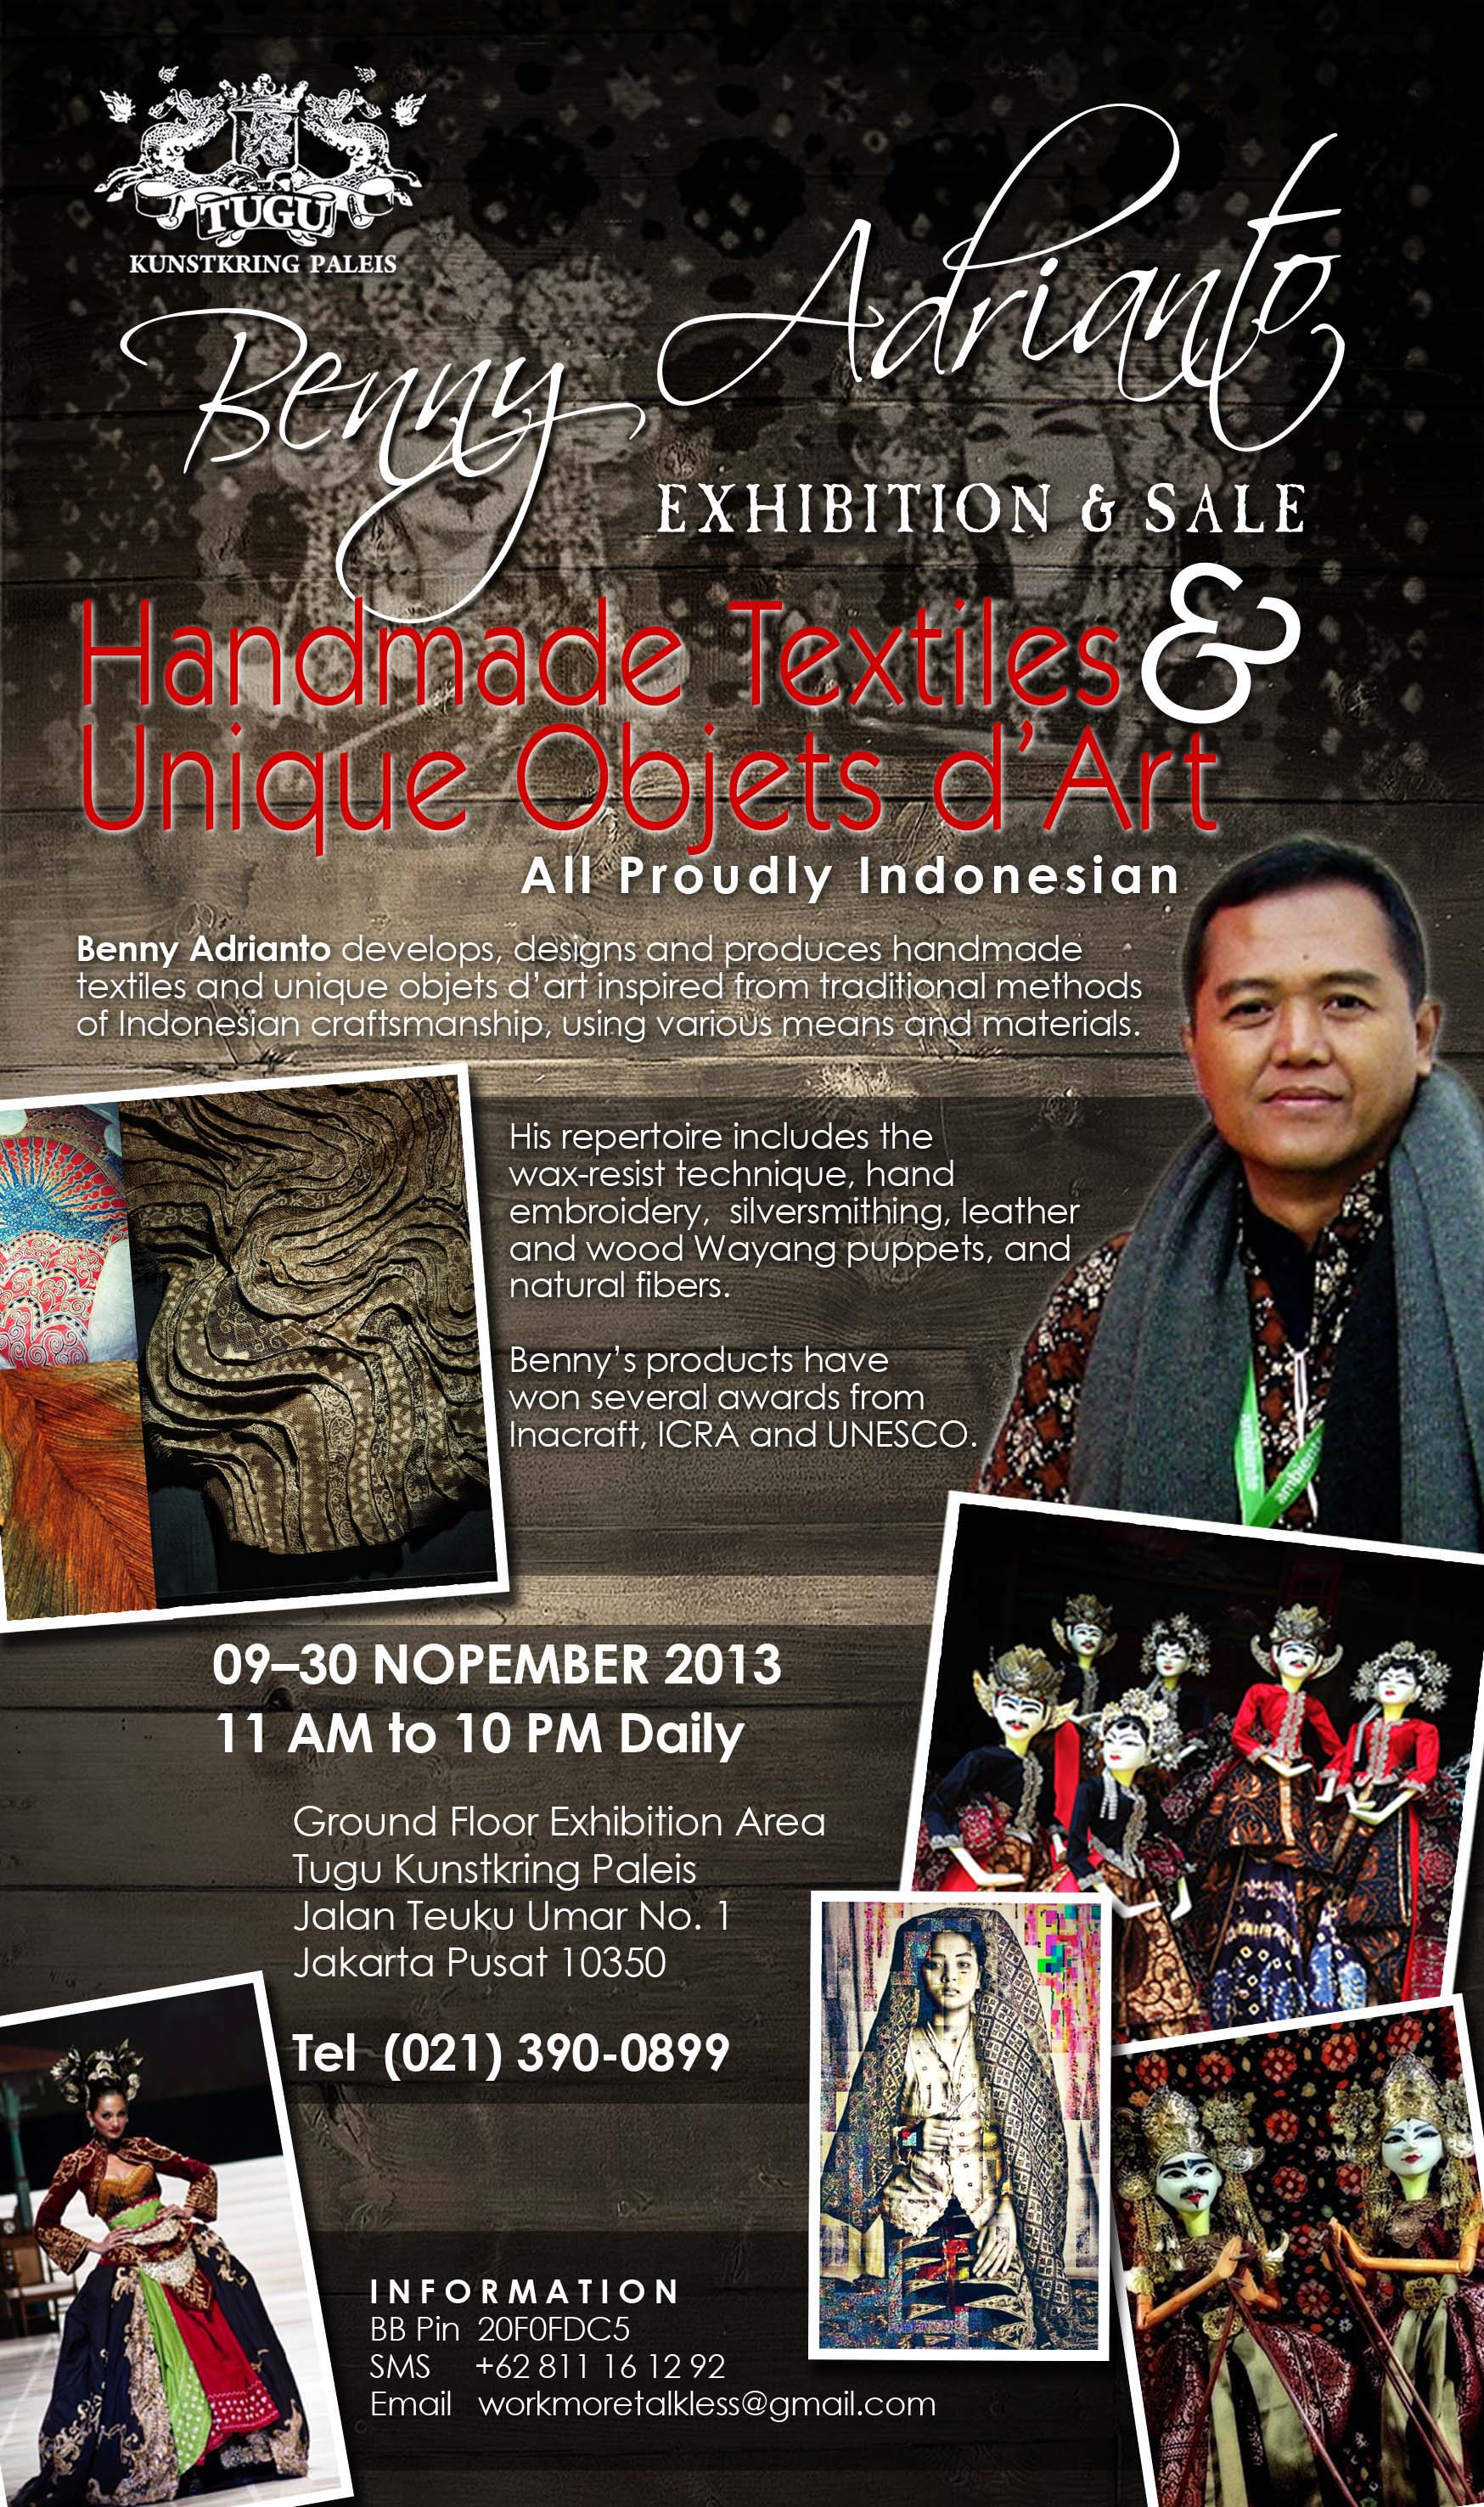 benny adrianto exhibiton & sale - handmade textiles & unique objects d'art at tugu kunstkring paleis